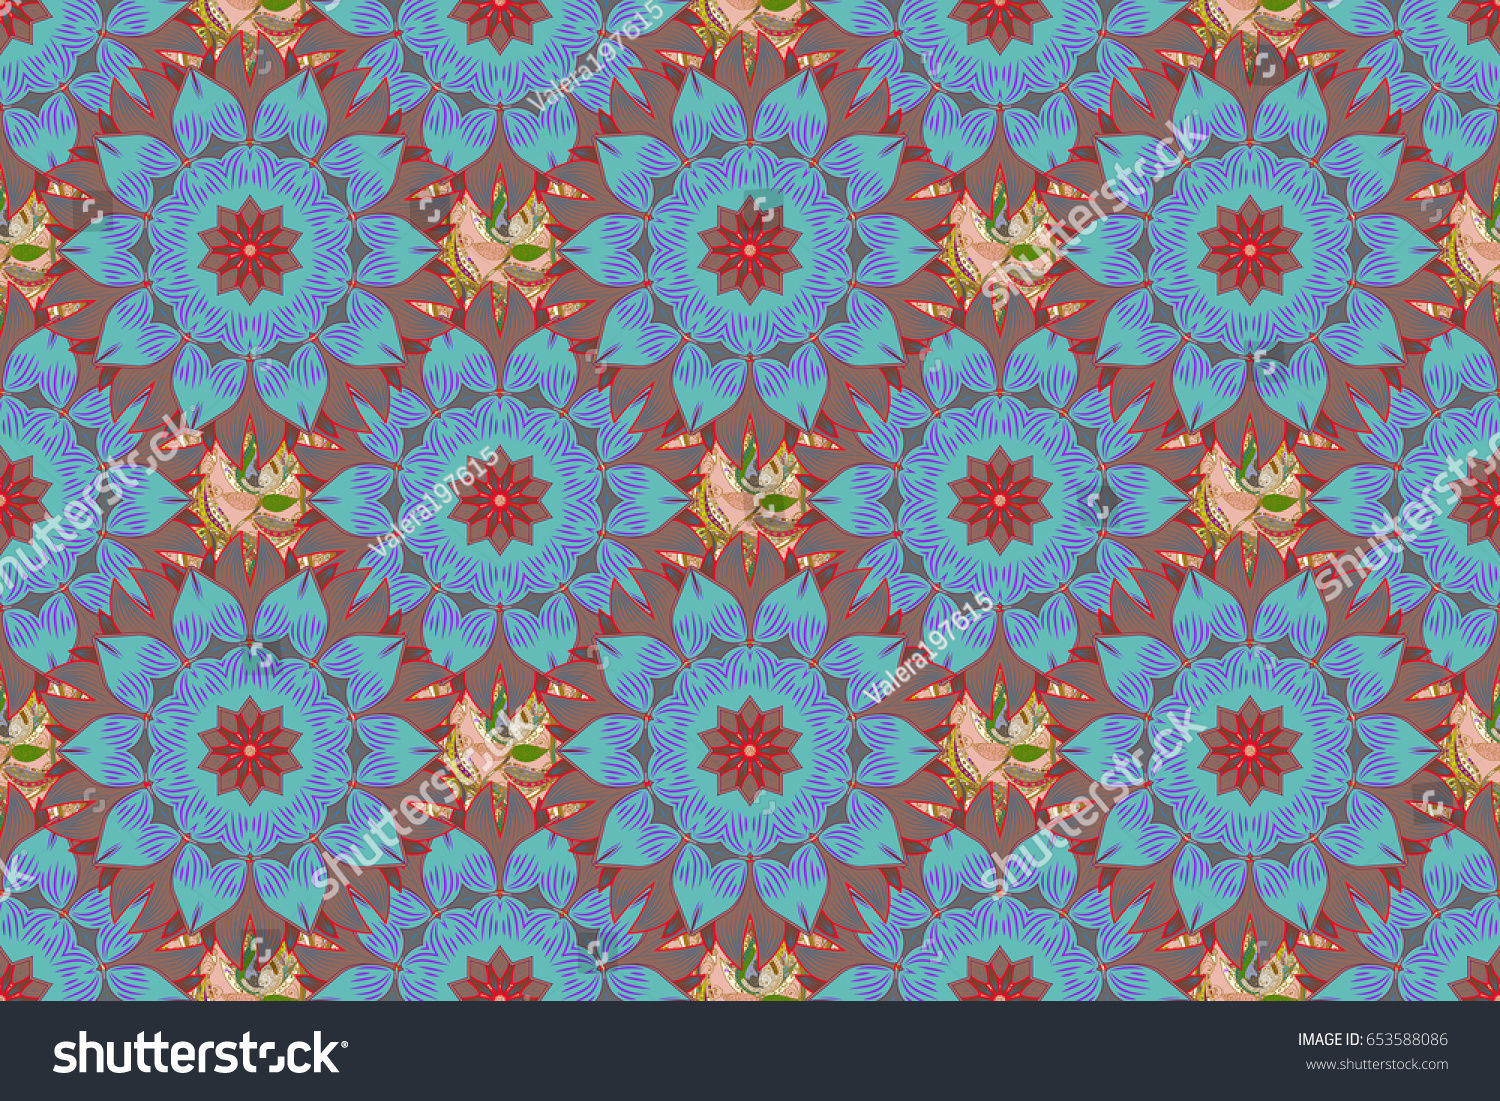 Watercolor hand painting of abstract blue flowers seamless pattern id 653588086 izmirmasajfo